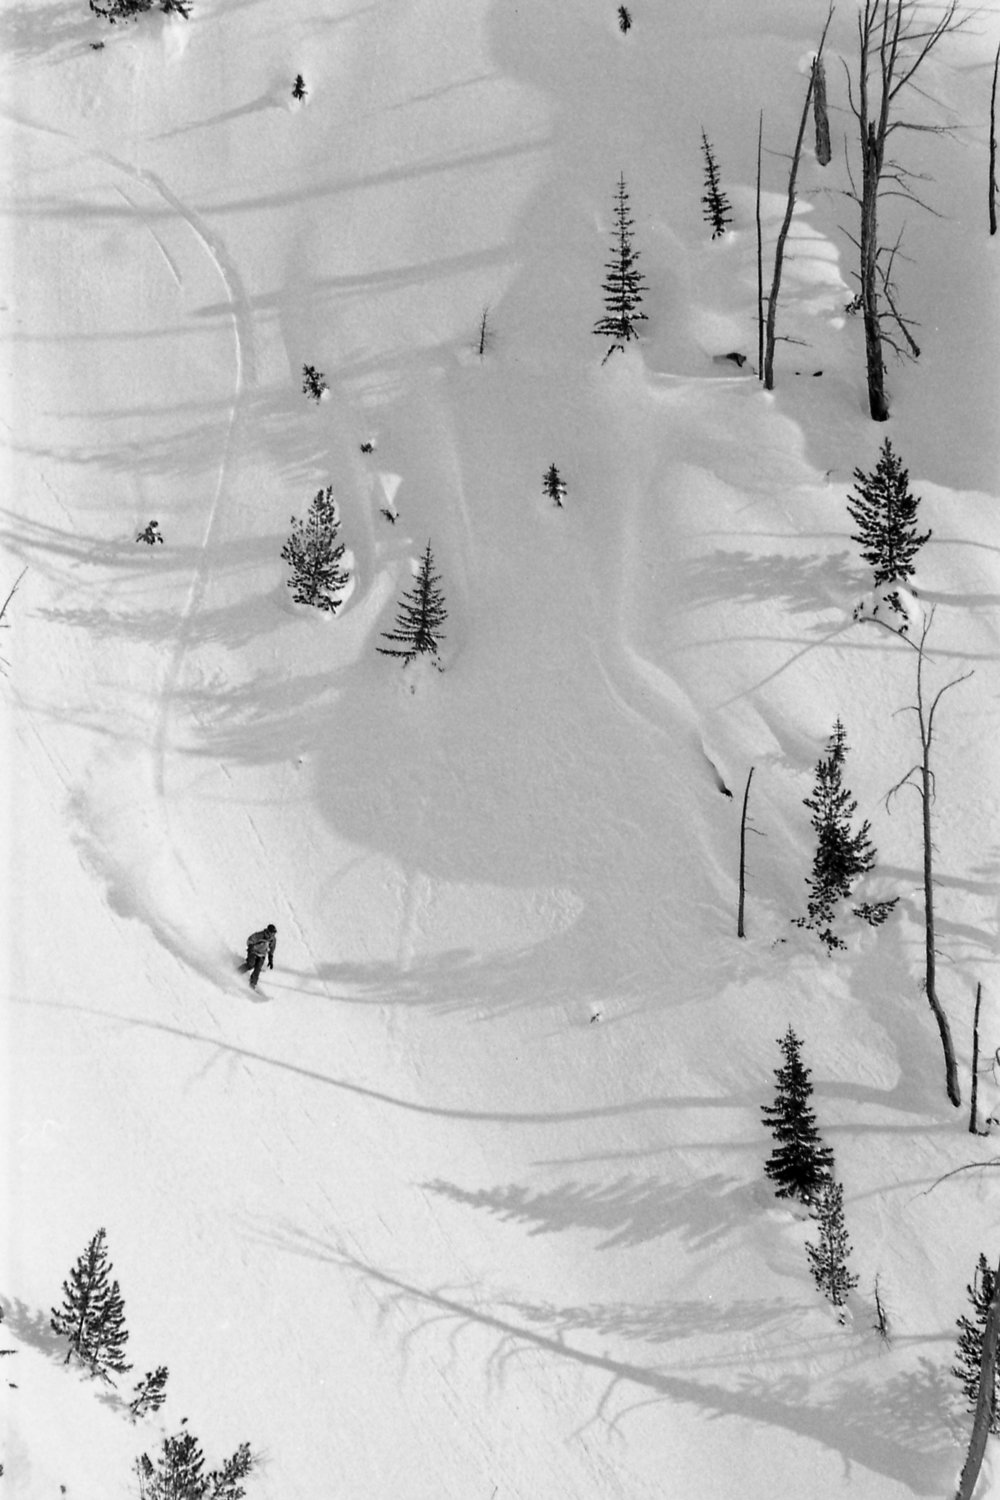 Craig Kelly, Purcell Mountains, BC, 1998, Chris Brunkhart photo